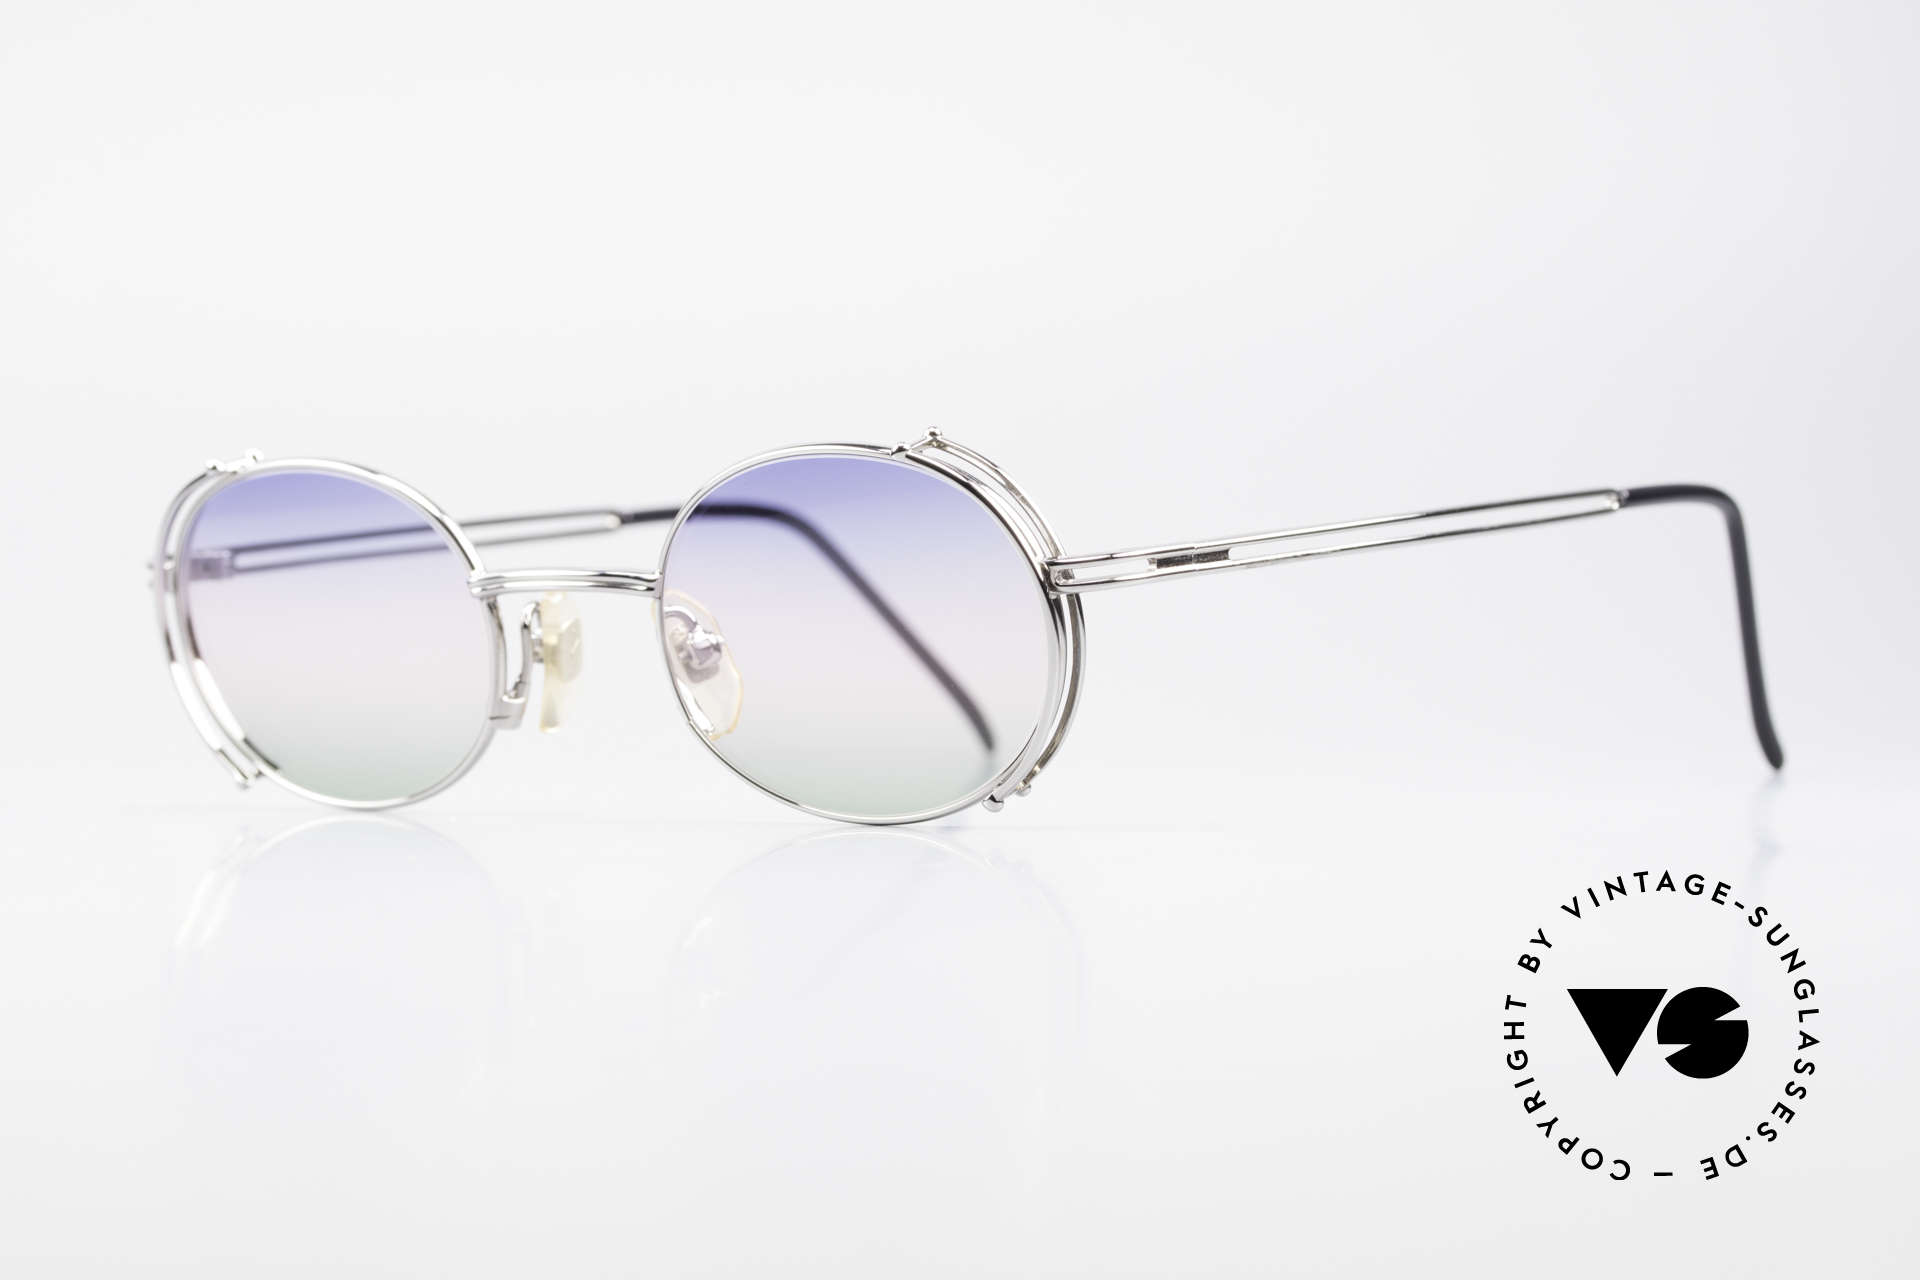 "Yohji Yamamoto 52-4107 Oval Designer Sunglasses 90's, a vintage ""must-have"" for all lovers of quality and design, Made for Men and Women"